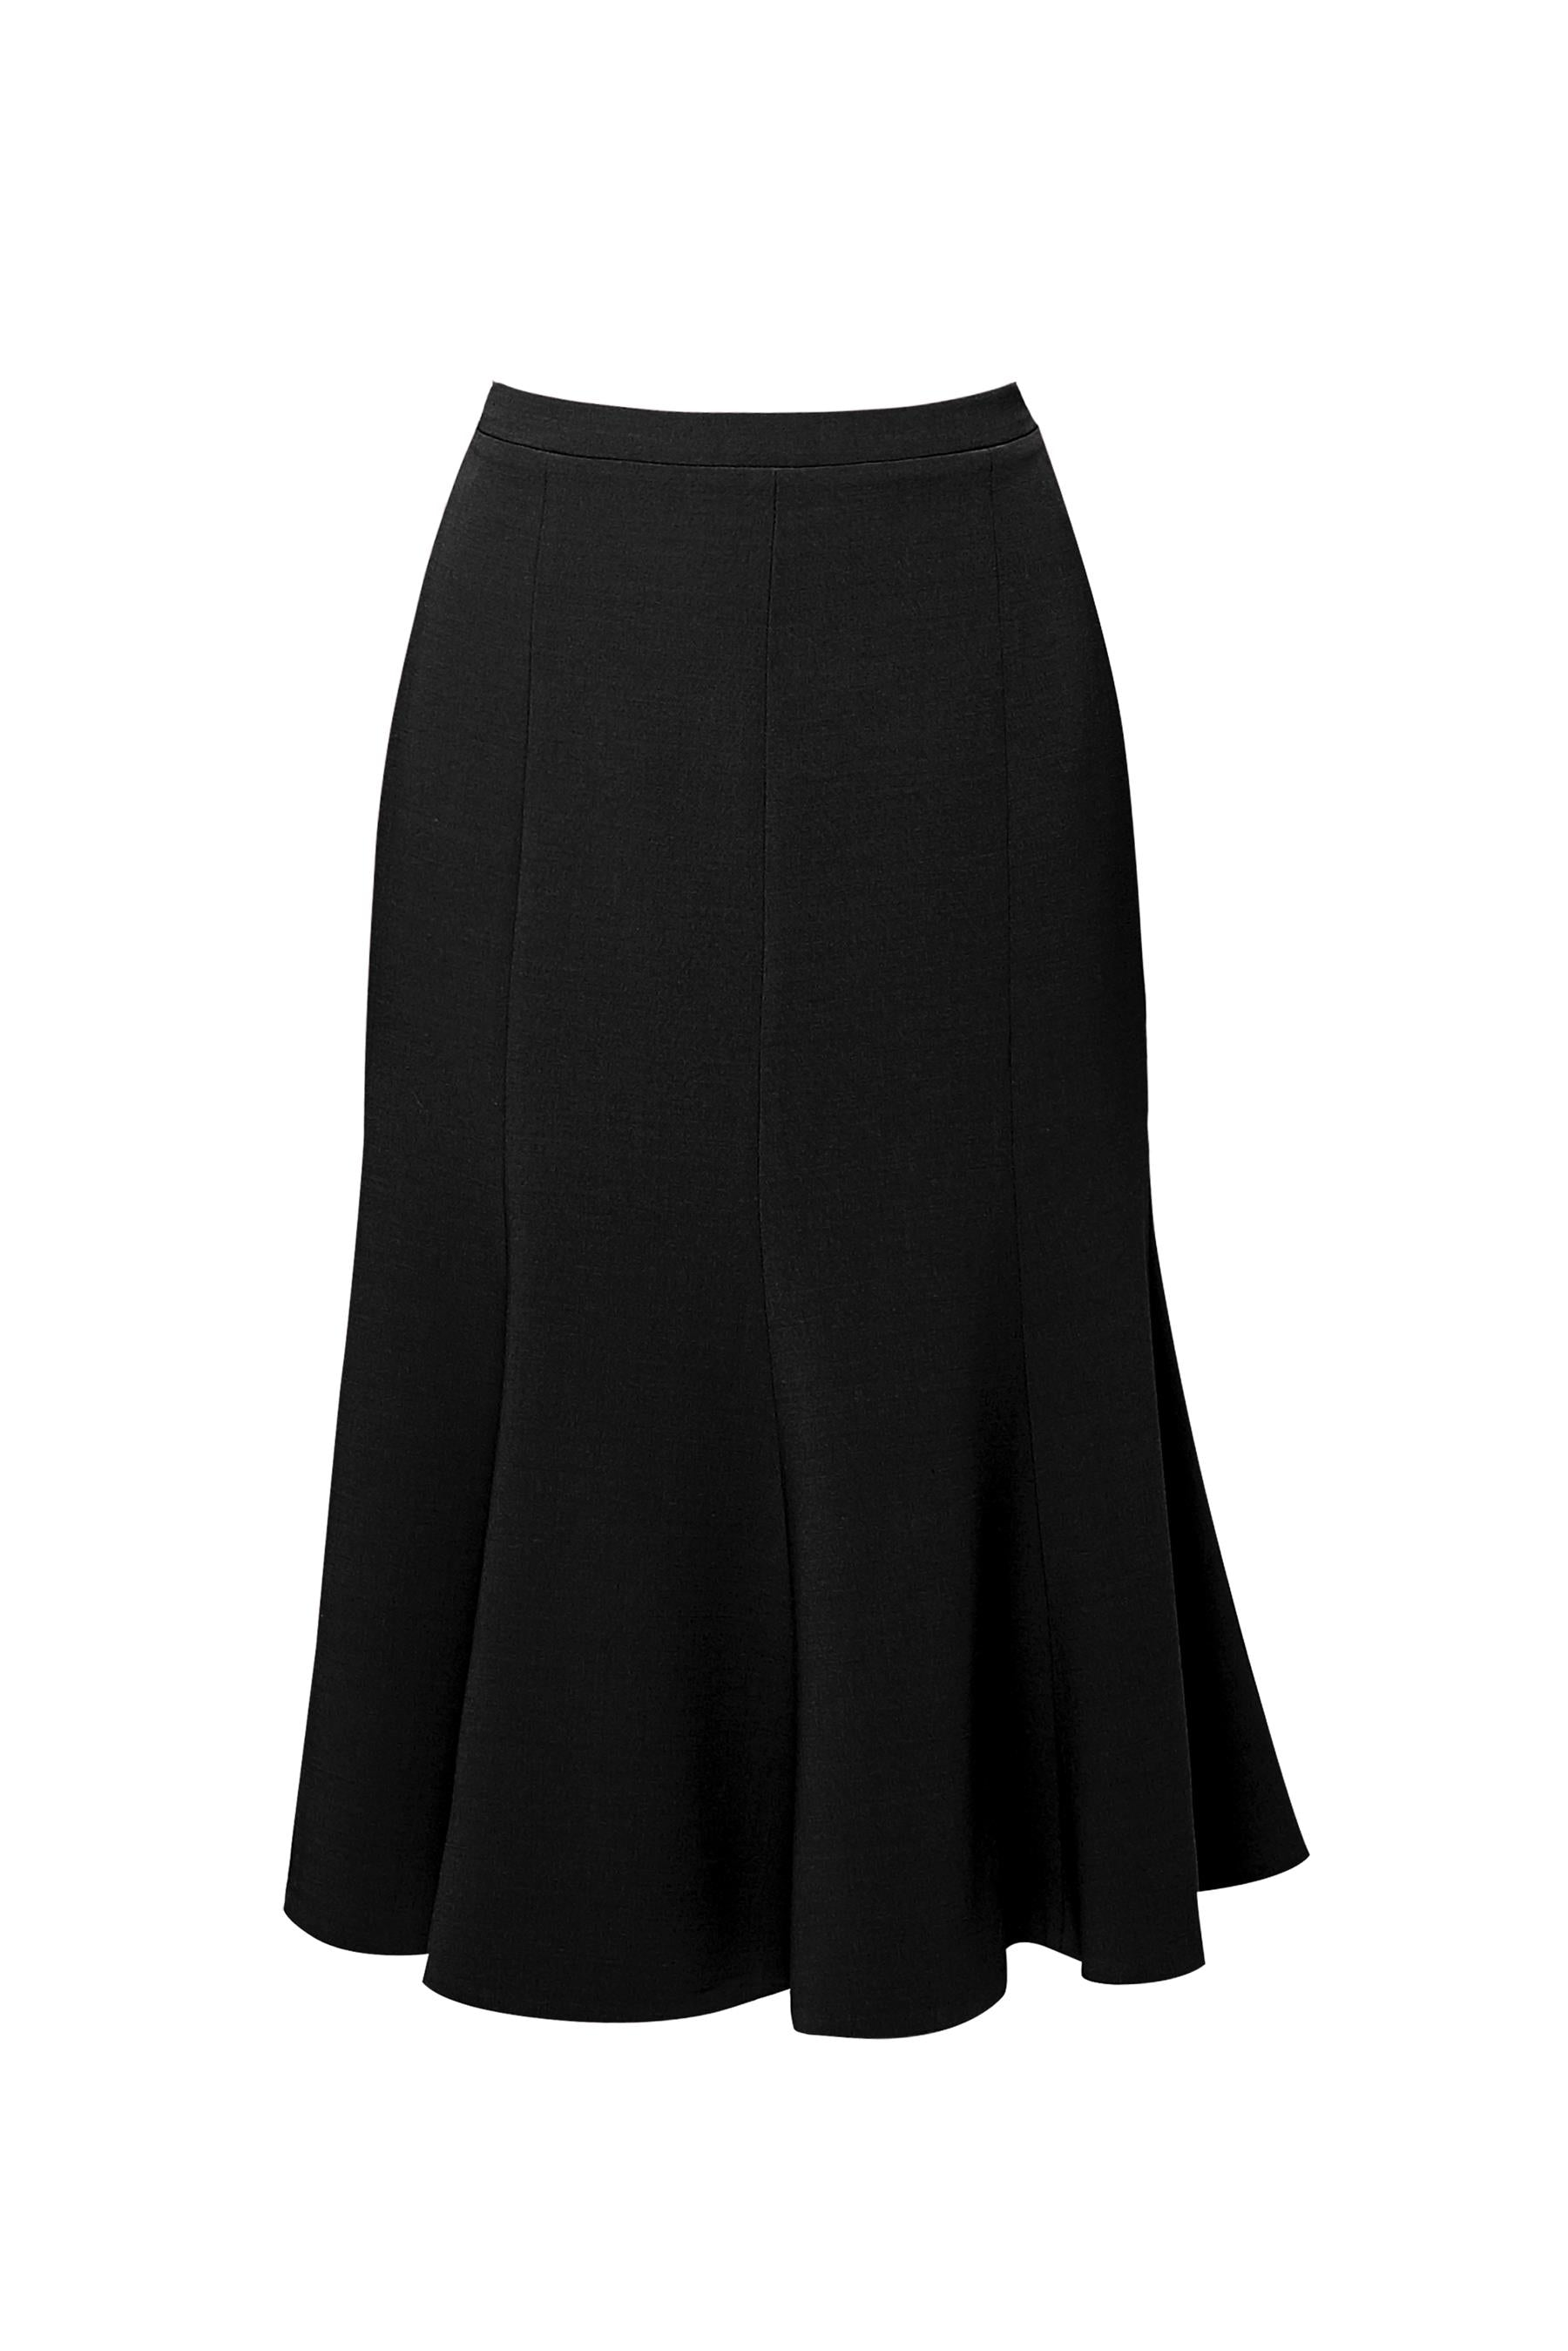 Wool midi skirt in black